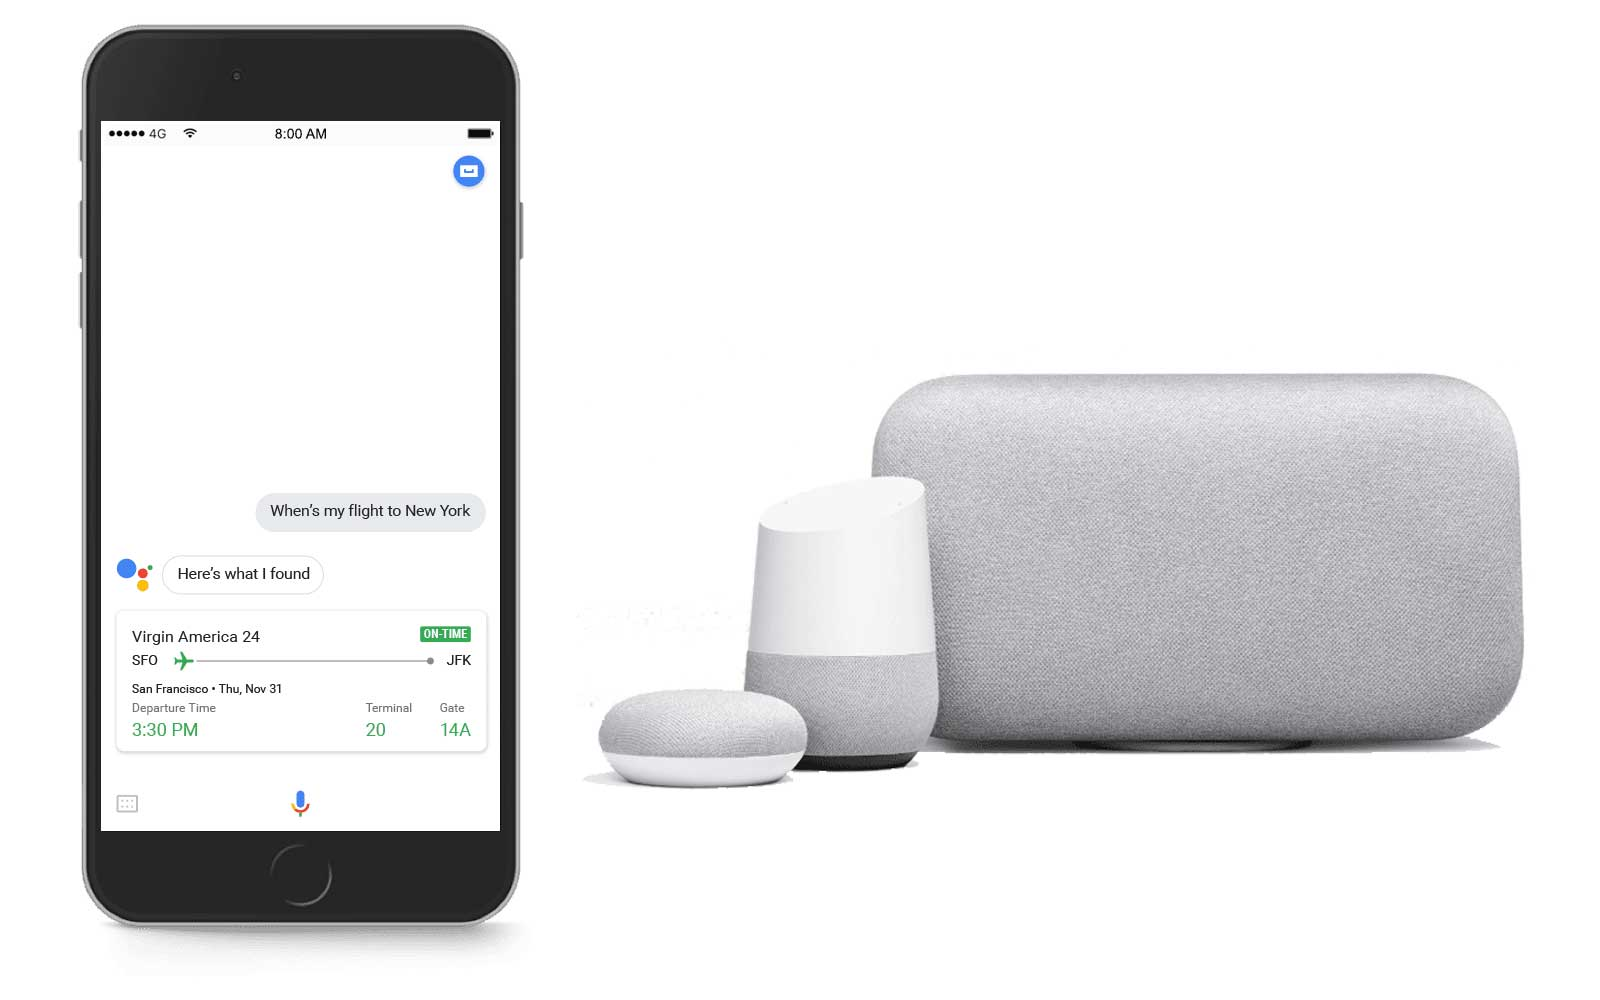 Google Is Adding 6 New Voices to Google Assistant, Including John Legend's